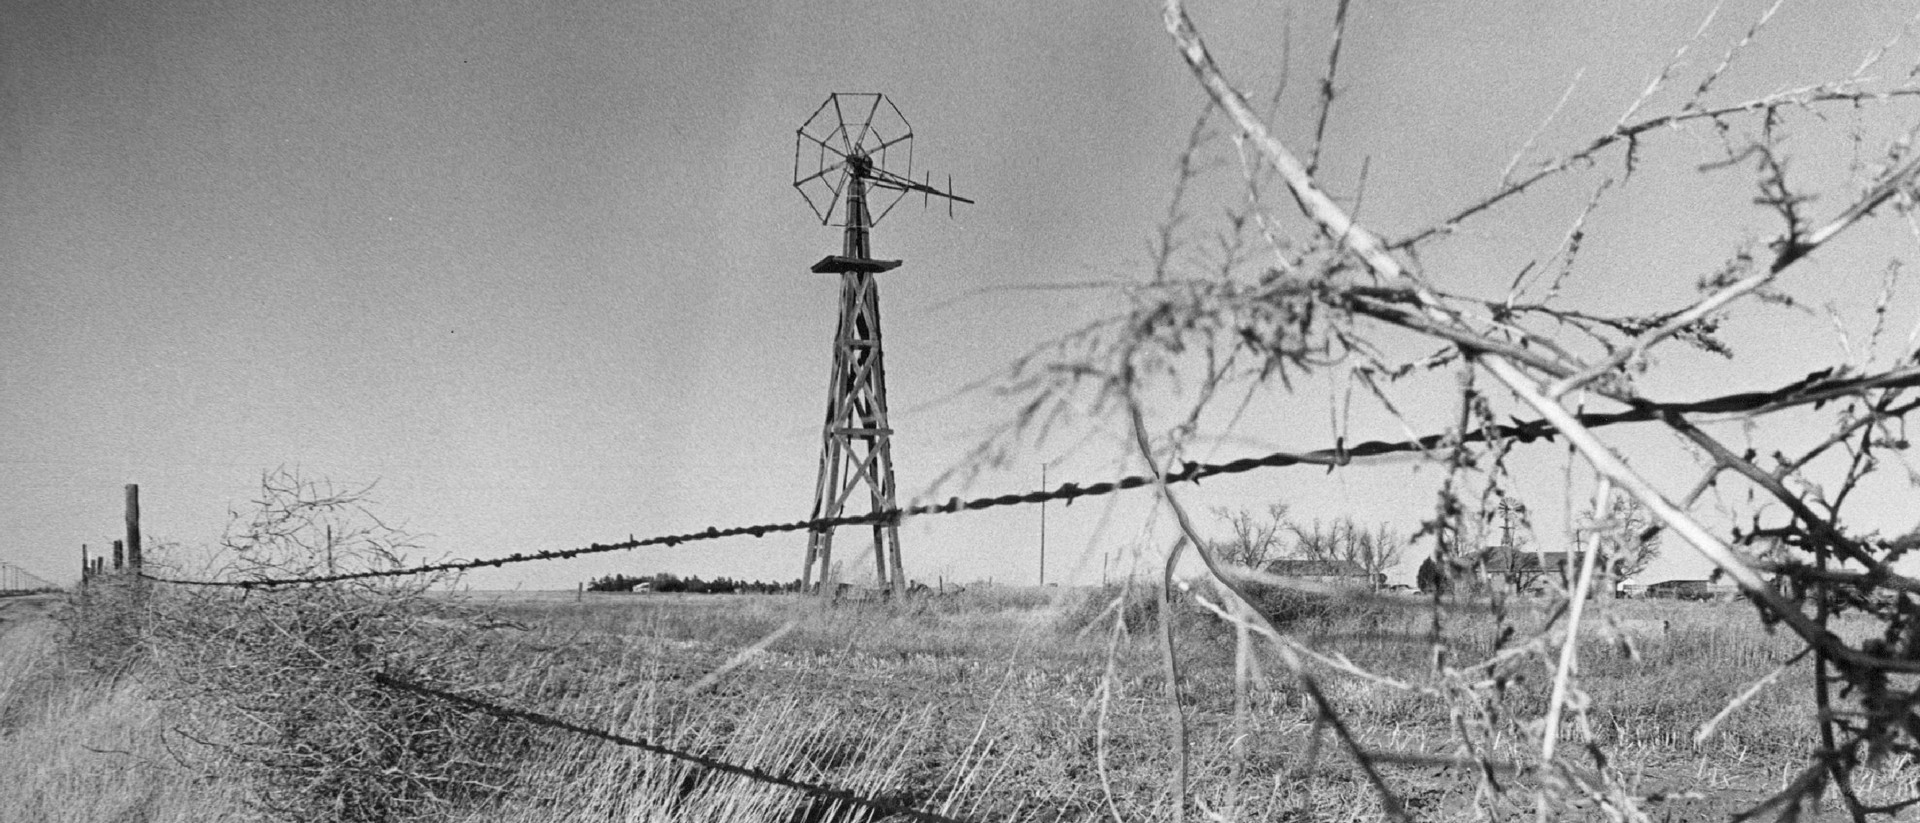 Never before was so much of the world fenced off by barbed wire ...